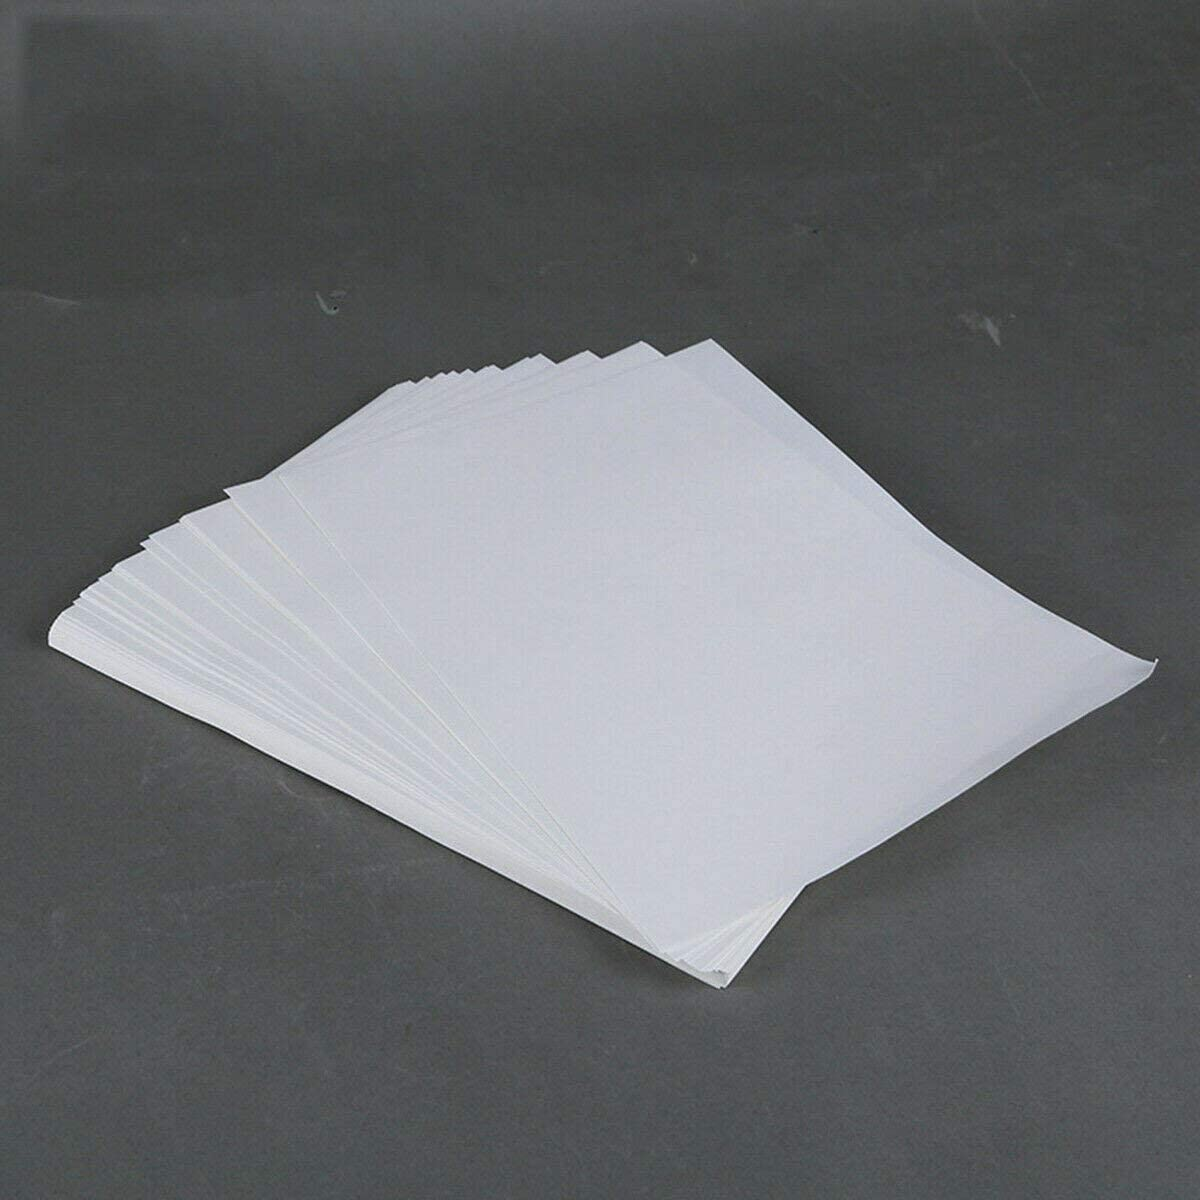 LYHSH Tattoo Designs 50 100 Sheets A3 100% quality warranty! A4 Soldering Sublimation Pa Transfer